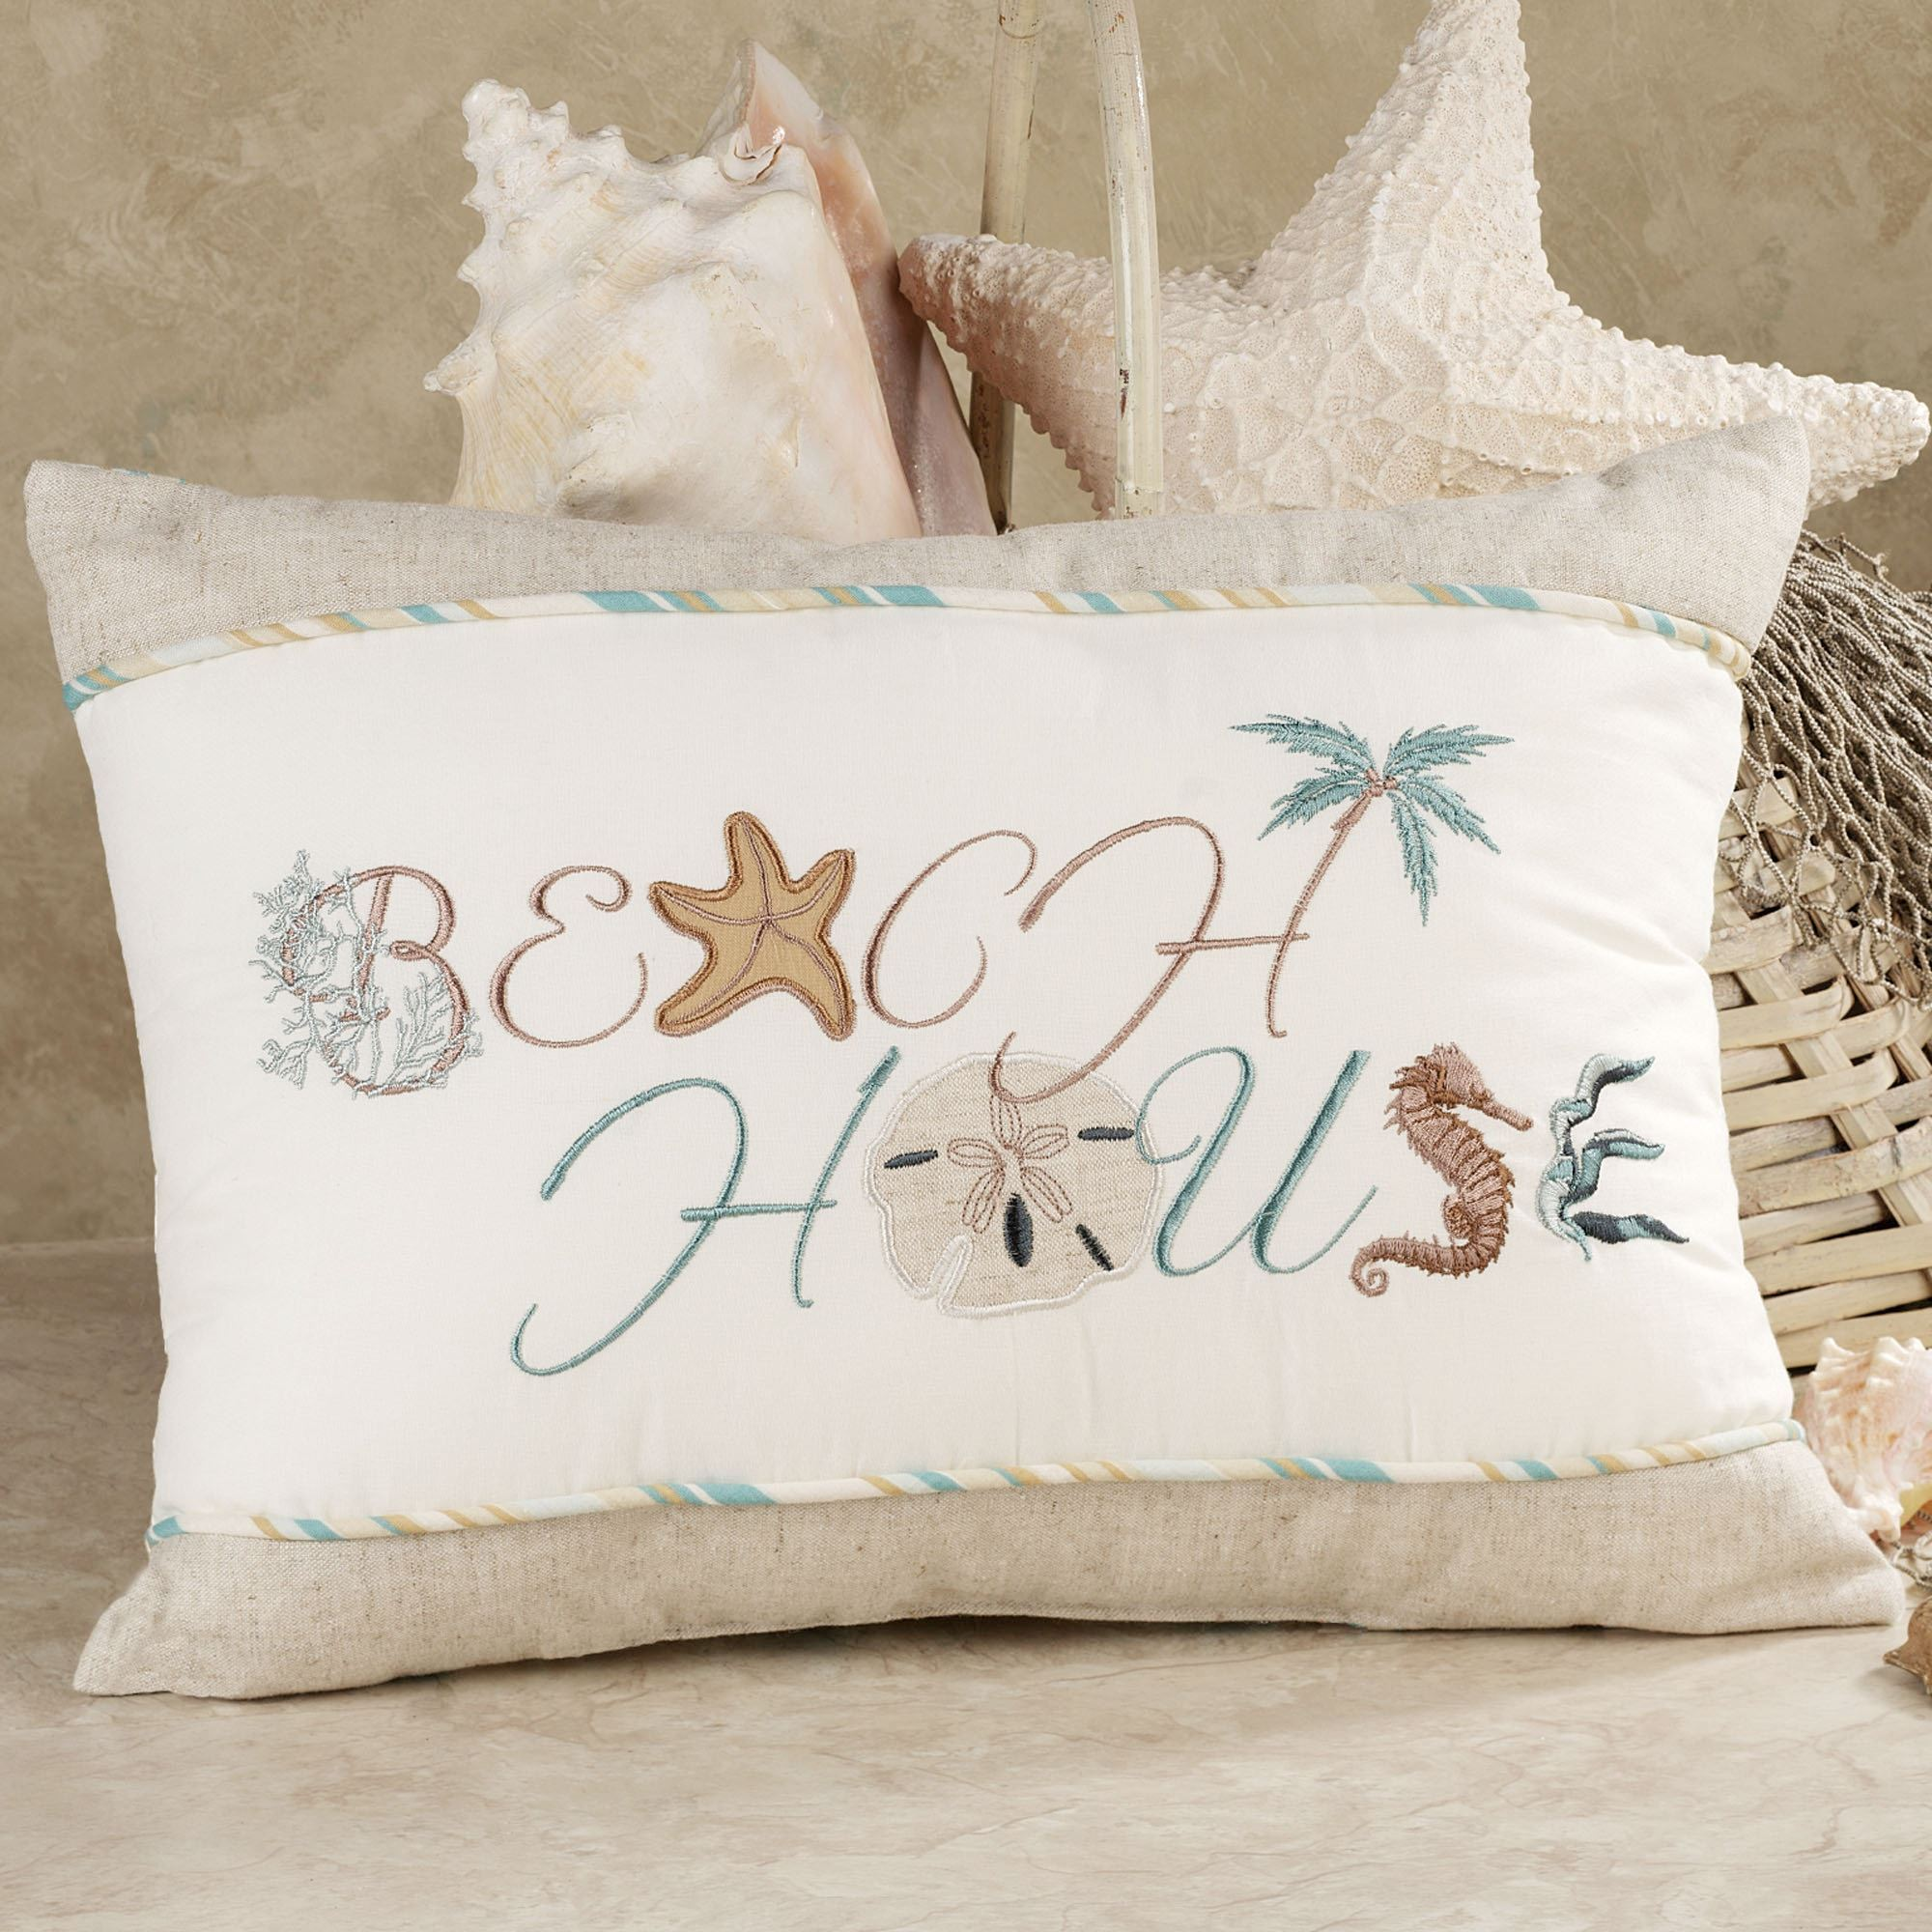 stpetepillow to products coast indian pillows outdoor and beach pillow rocks shores belleair i coastal gulf indoor